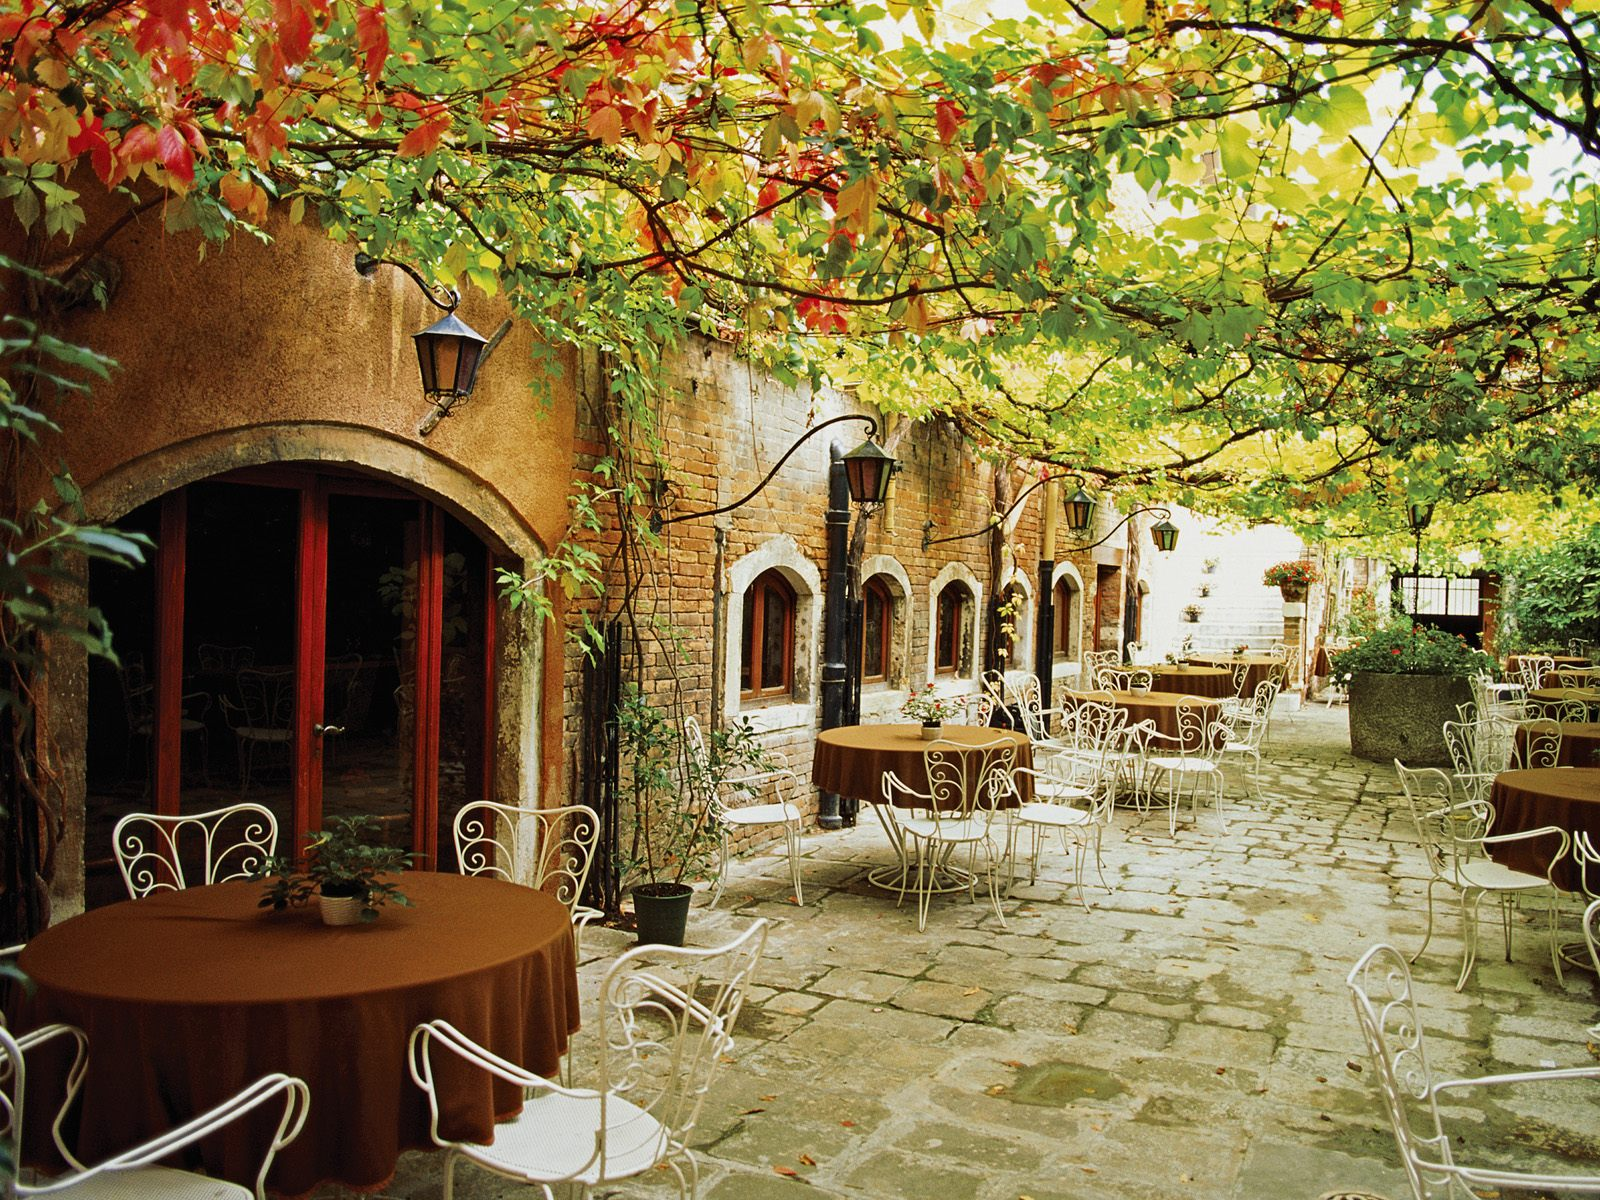 Hd wallpaper venice - Dining Alfresco Venice Italy Wallpapers Hd Wallpapers